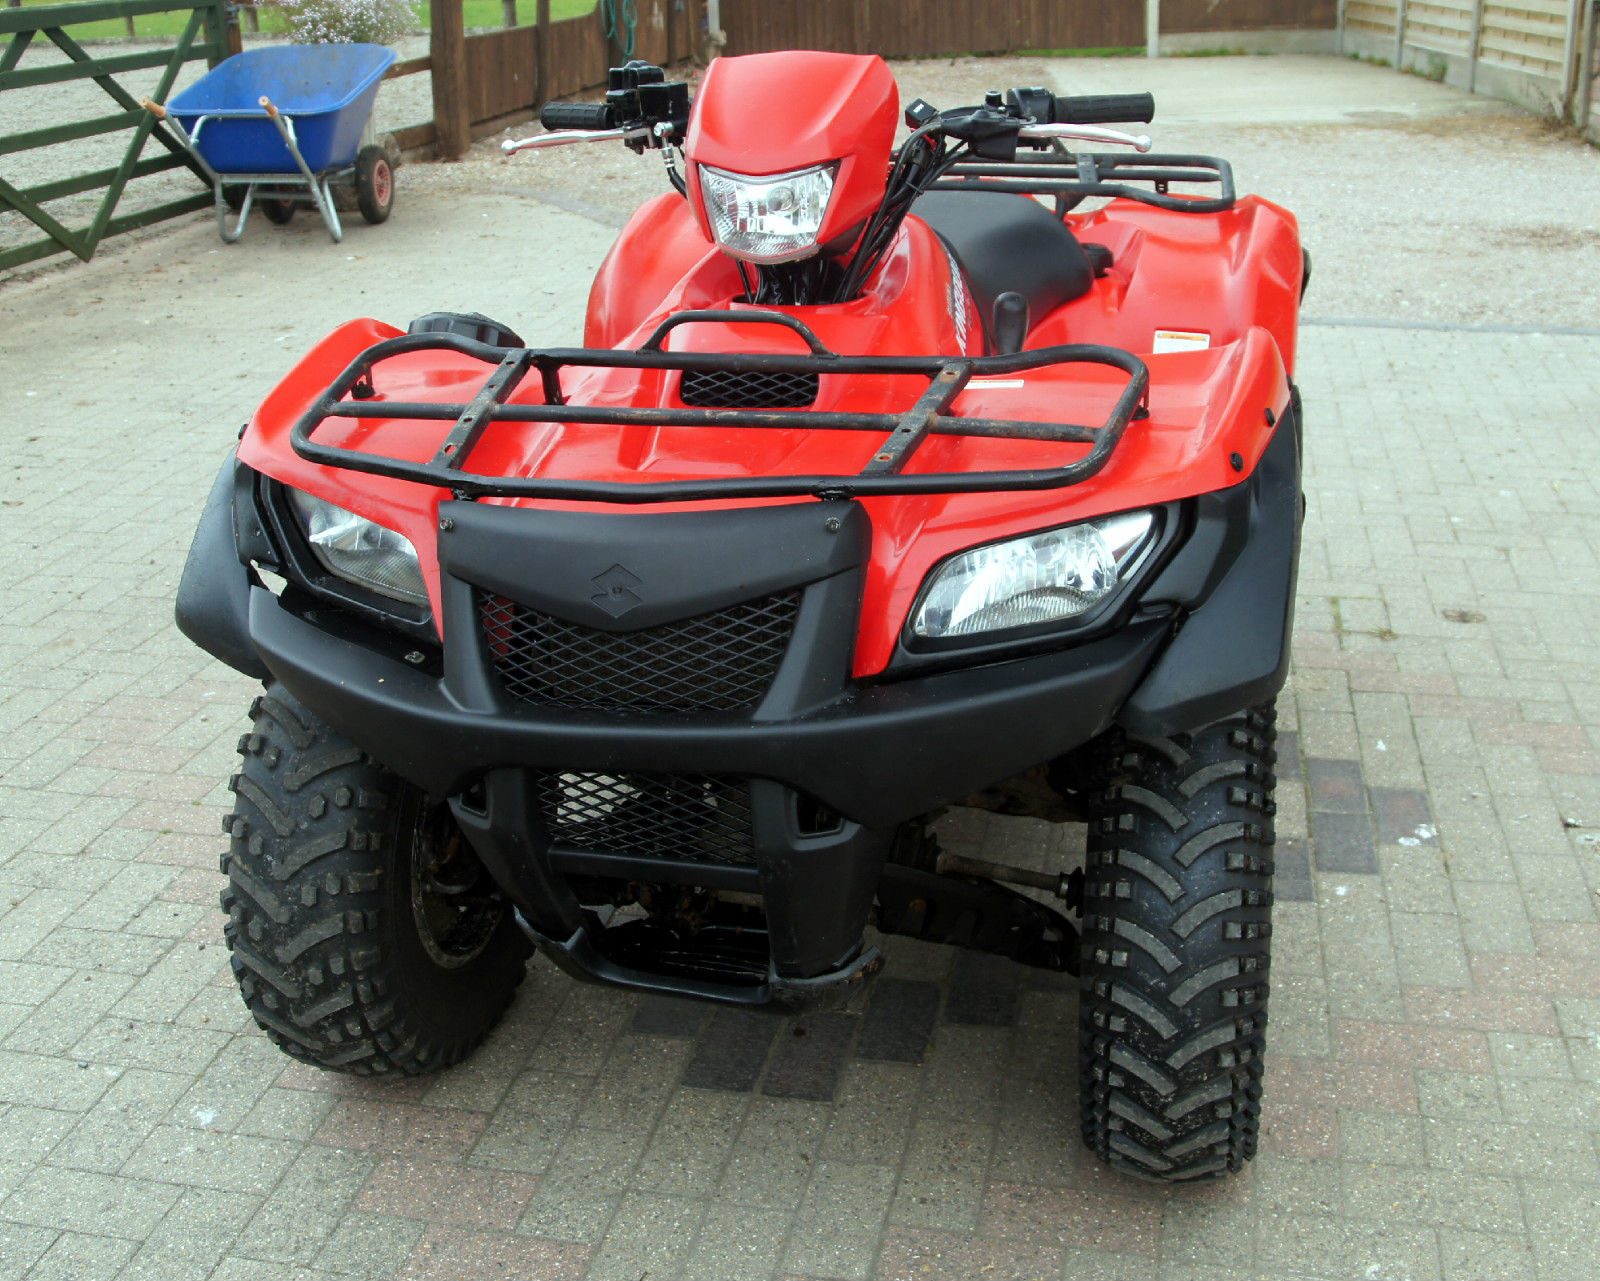 Four Wheeler With Rims: SUZUKI LTF 700X KING QUAD 2008 4 WHEEL DRIVE QUAD